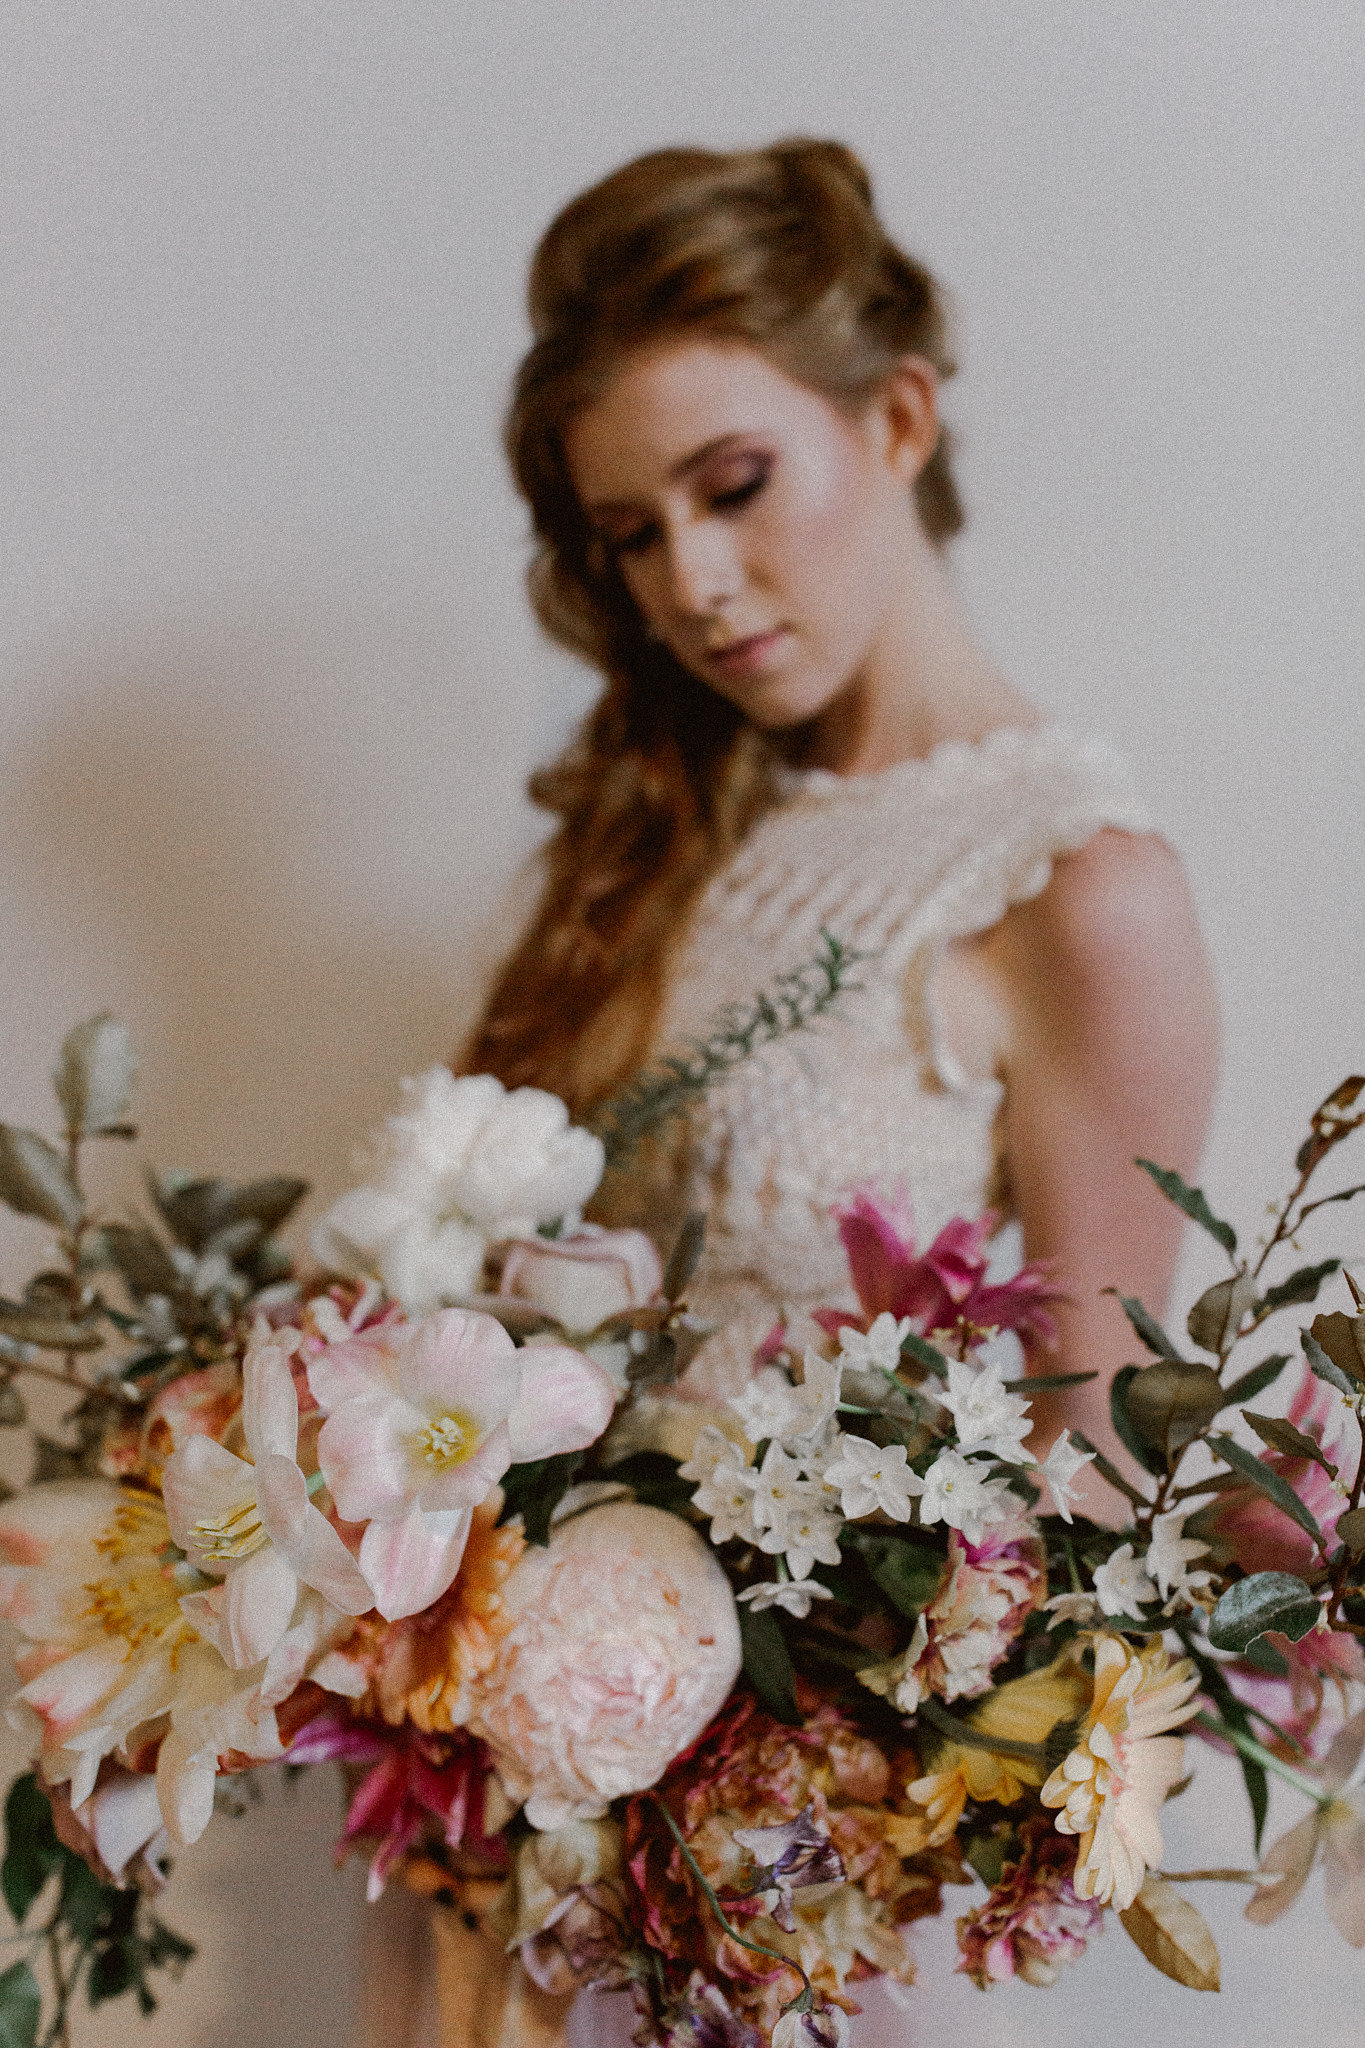 Romantic Free Bridal half up half down hairstyle + makeup | College Station hair + makeup artist Naturally Flawless | Bryan, Texas | Pink + Purple + Vintage + Romantic + Blush + crochet + two piece wedding dress | Wedding Coordinator Epoch Co+